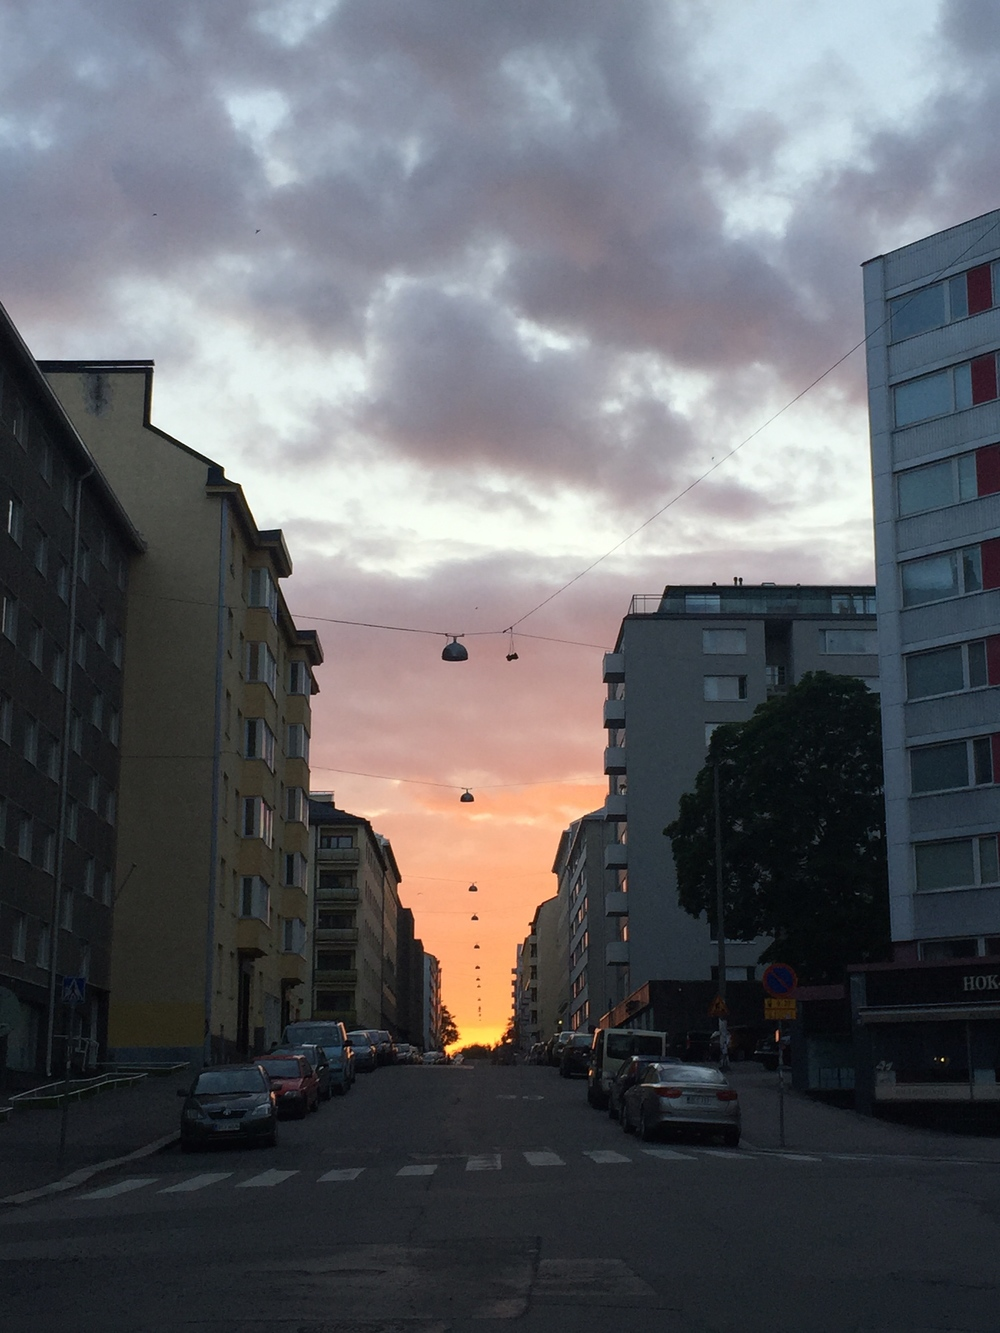 10:15 Sunset over streets of Kallio. / 10 July 2015